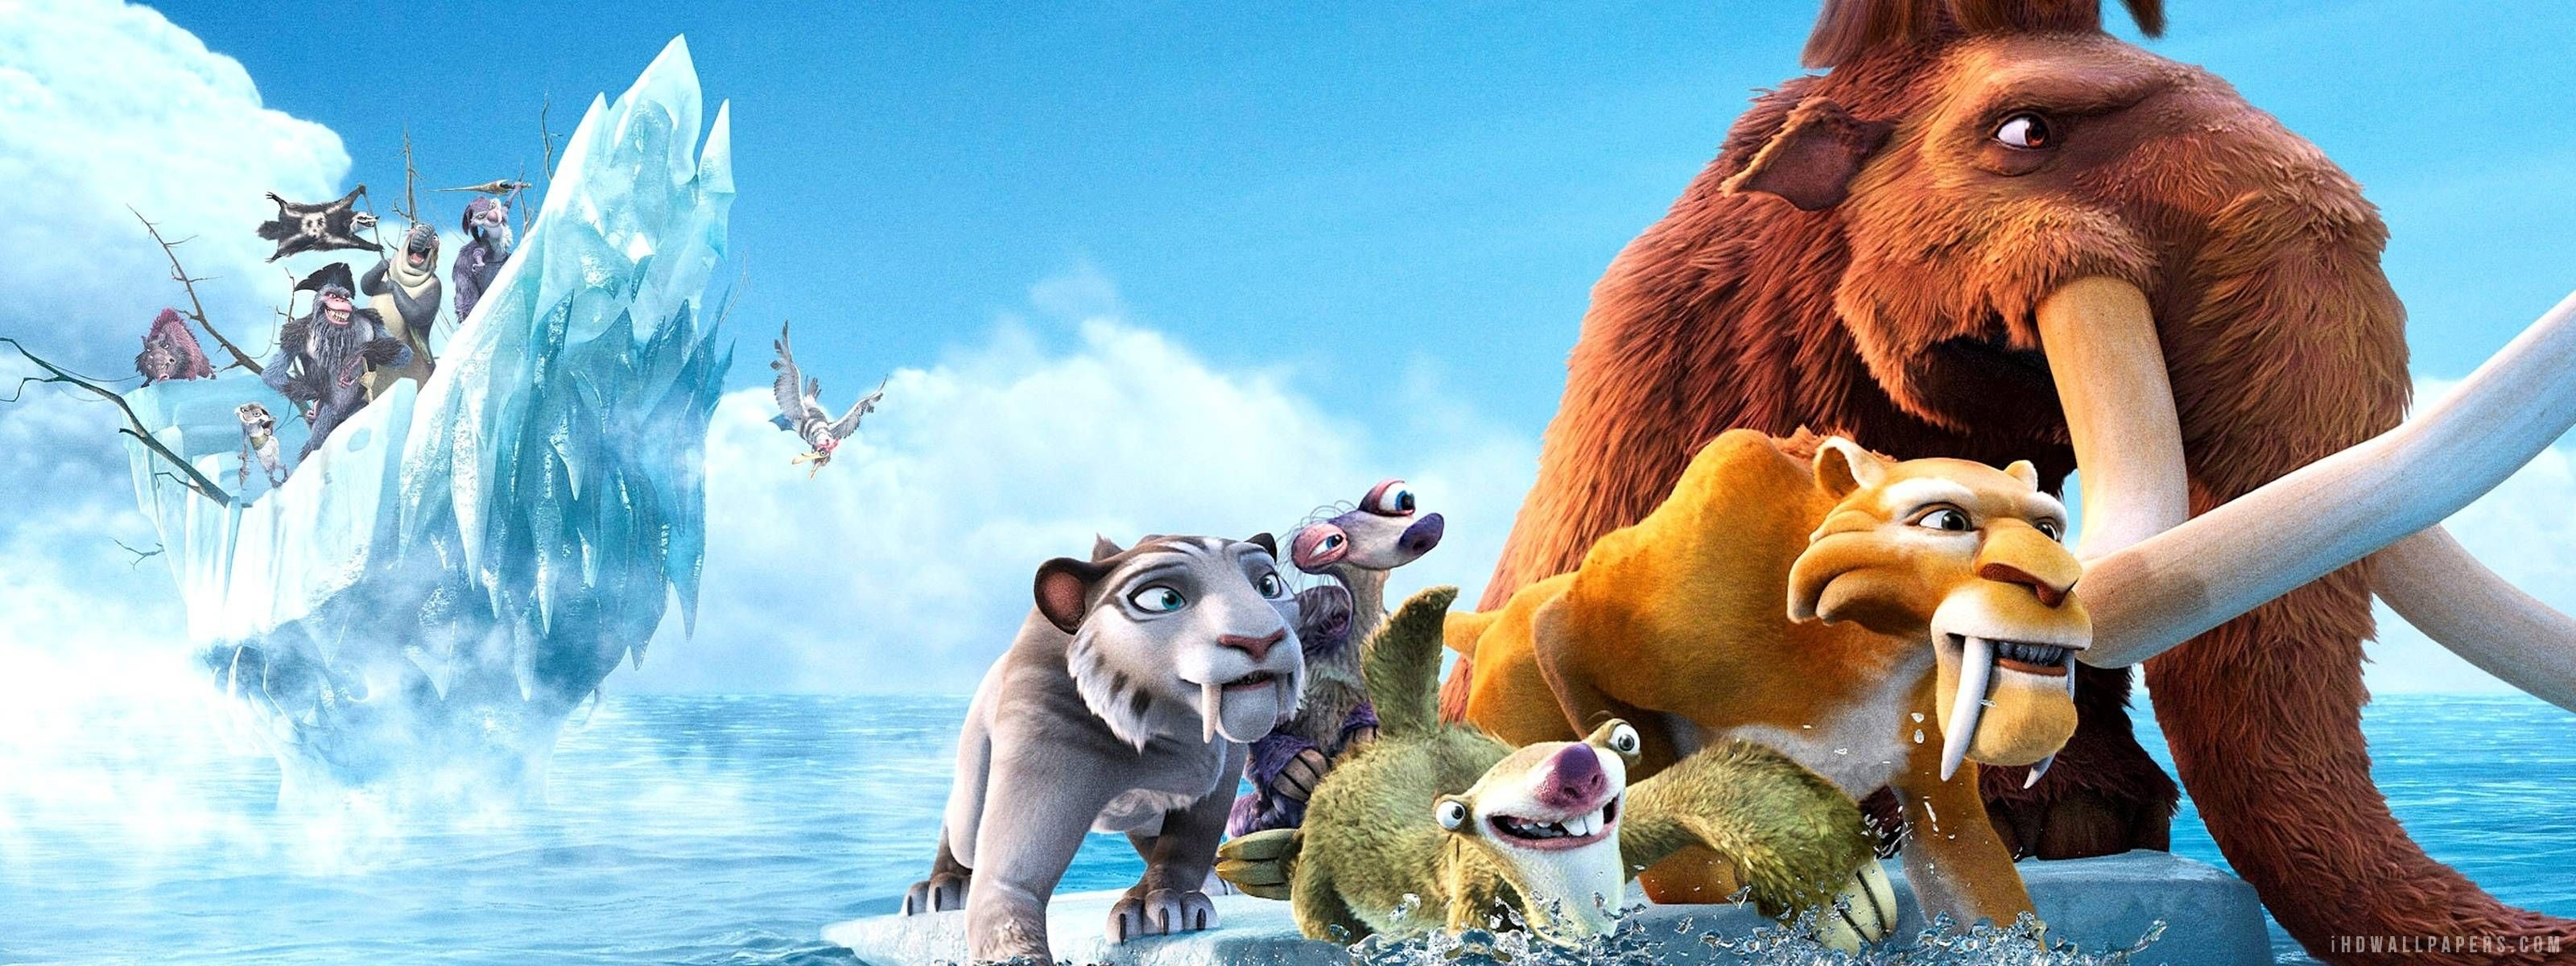 download free ice age wallpaper 3200x1200 - full hd wall   epic car